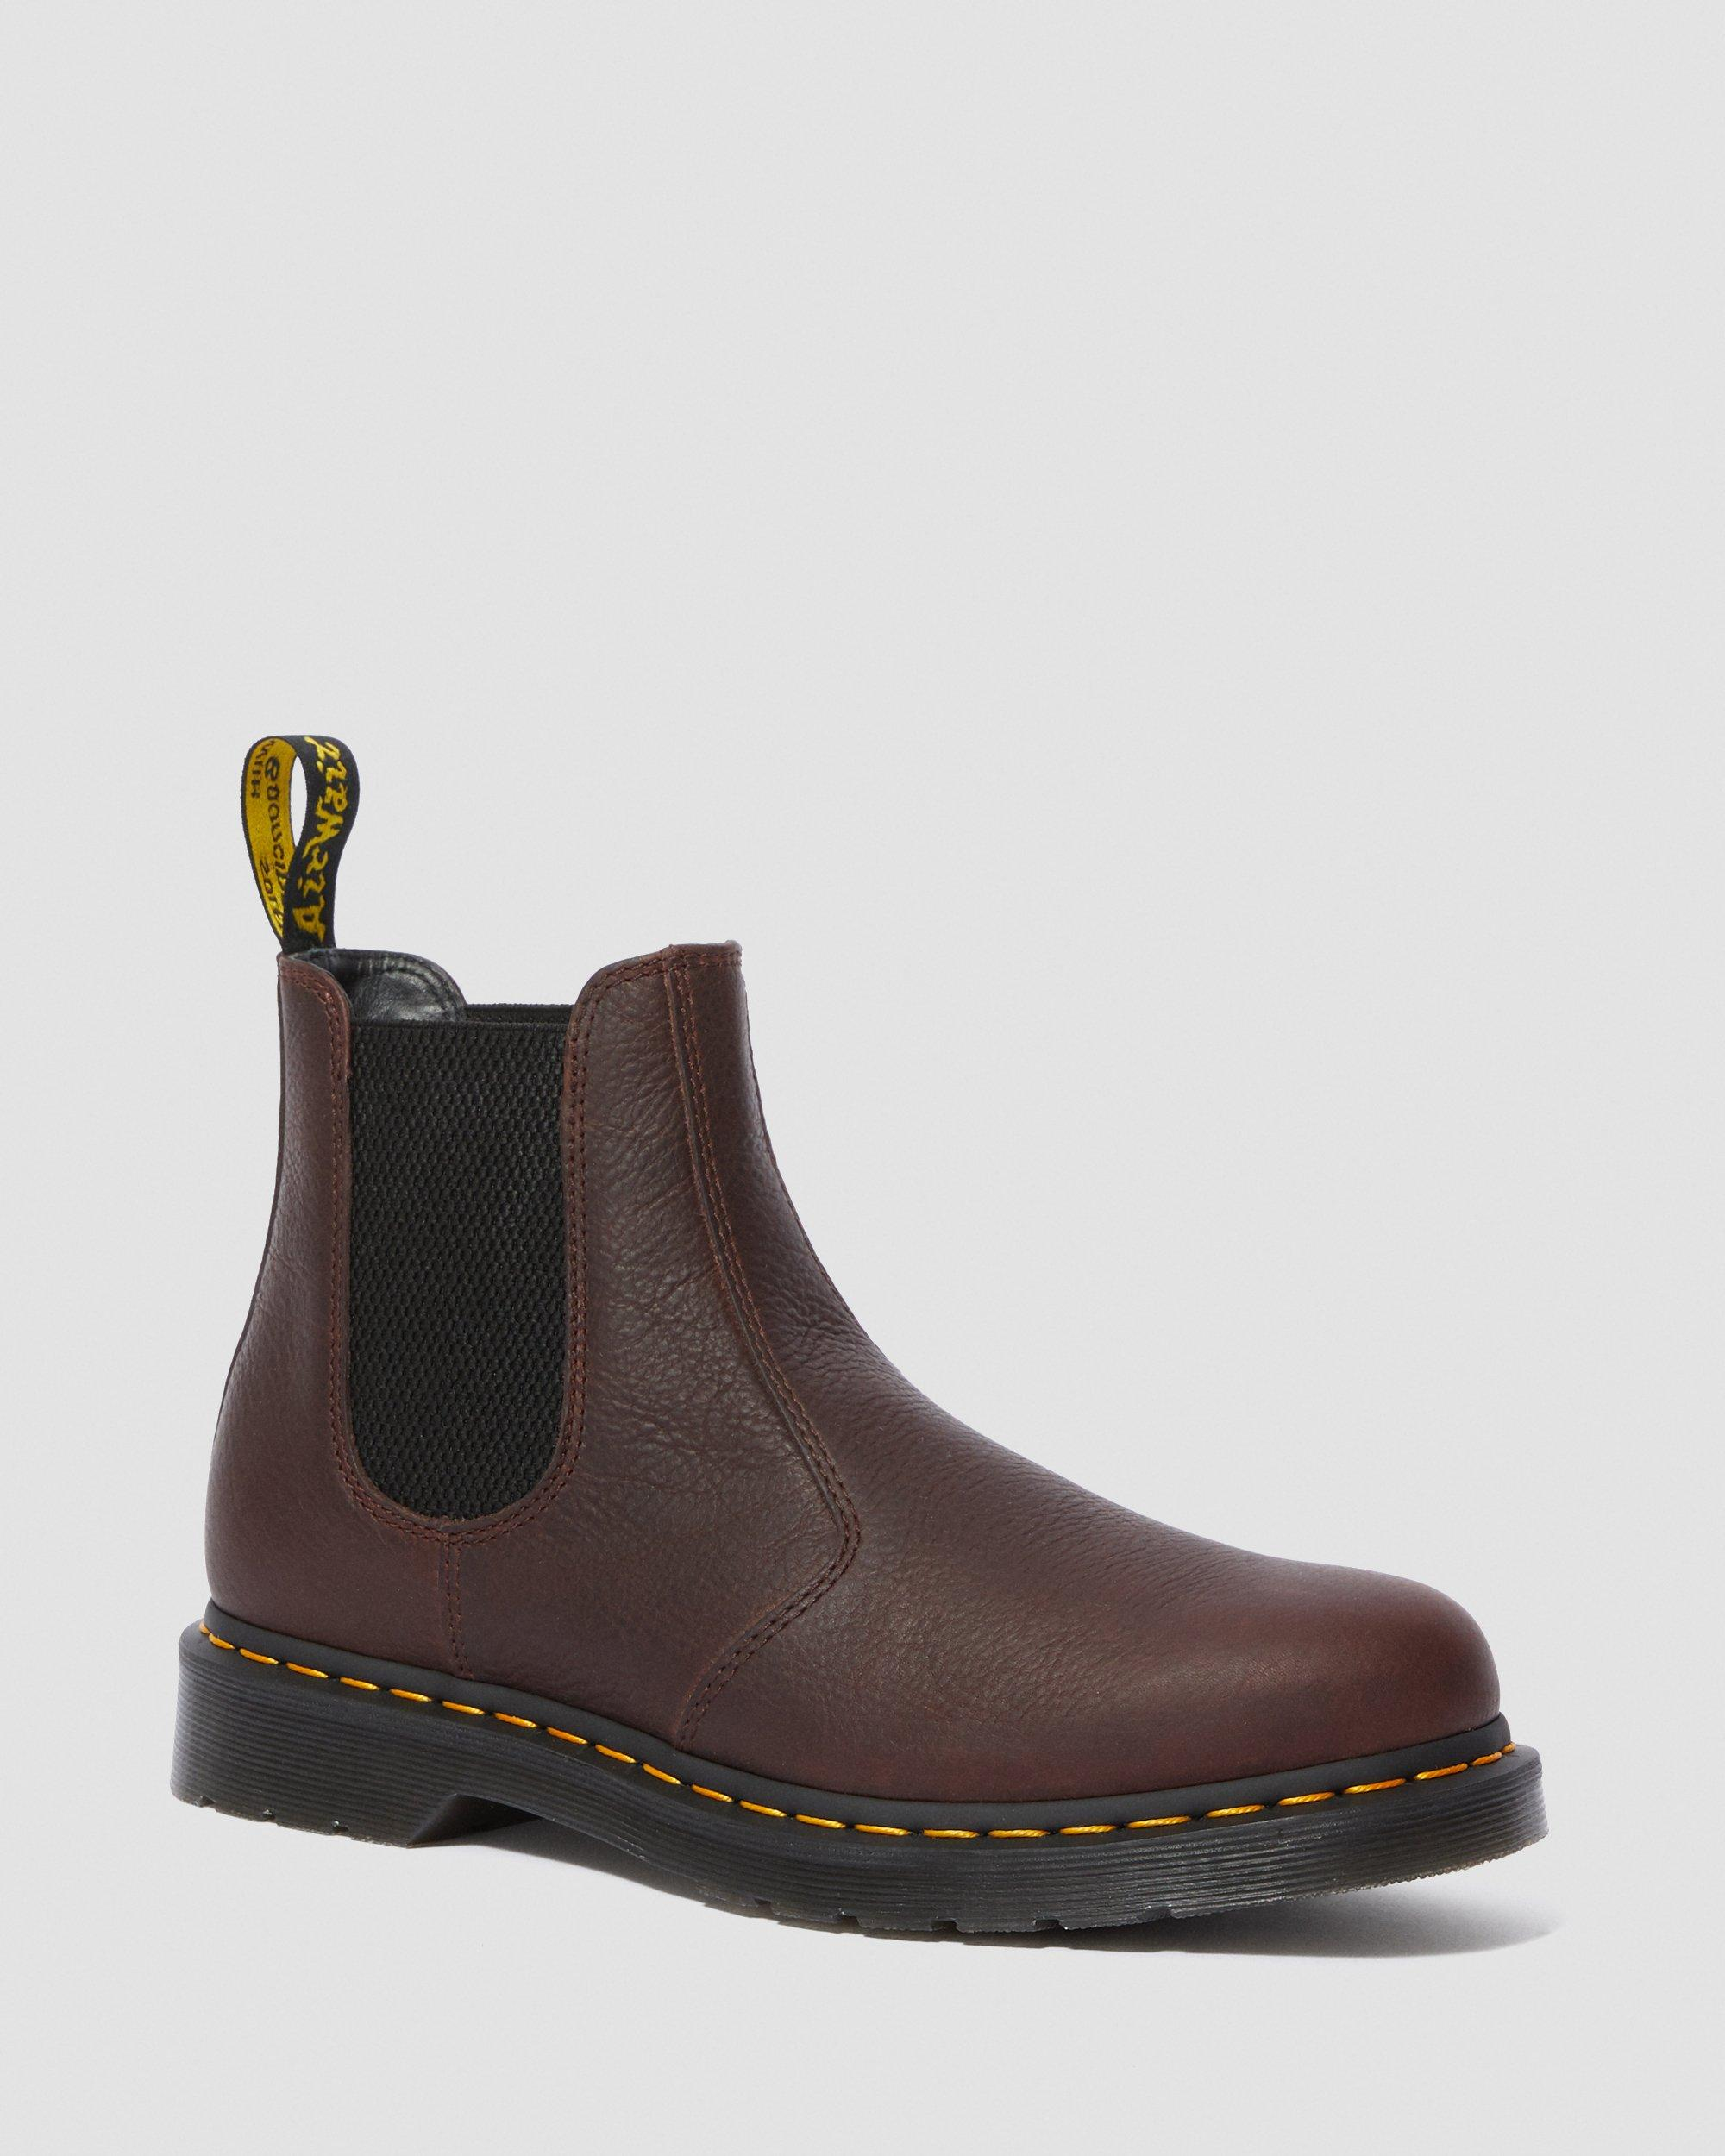 MARTENS Air Wair 2976 Docs Chelsea Boots Cherry Red DR Vegan Stiefel.Rot